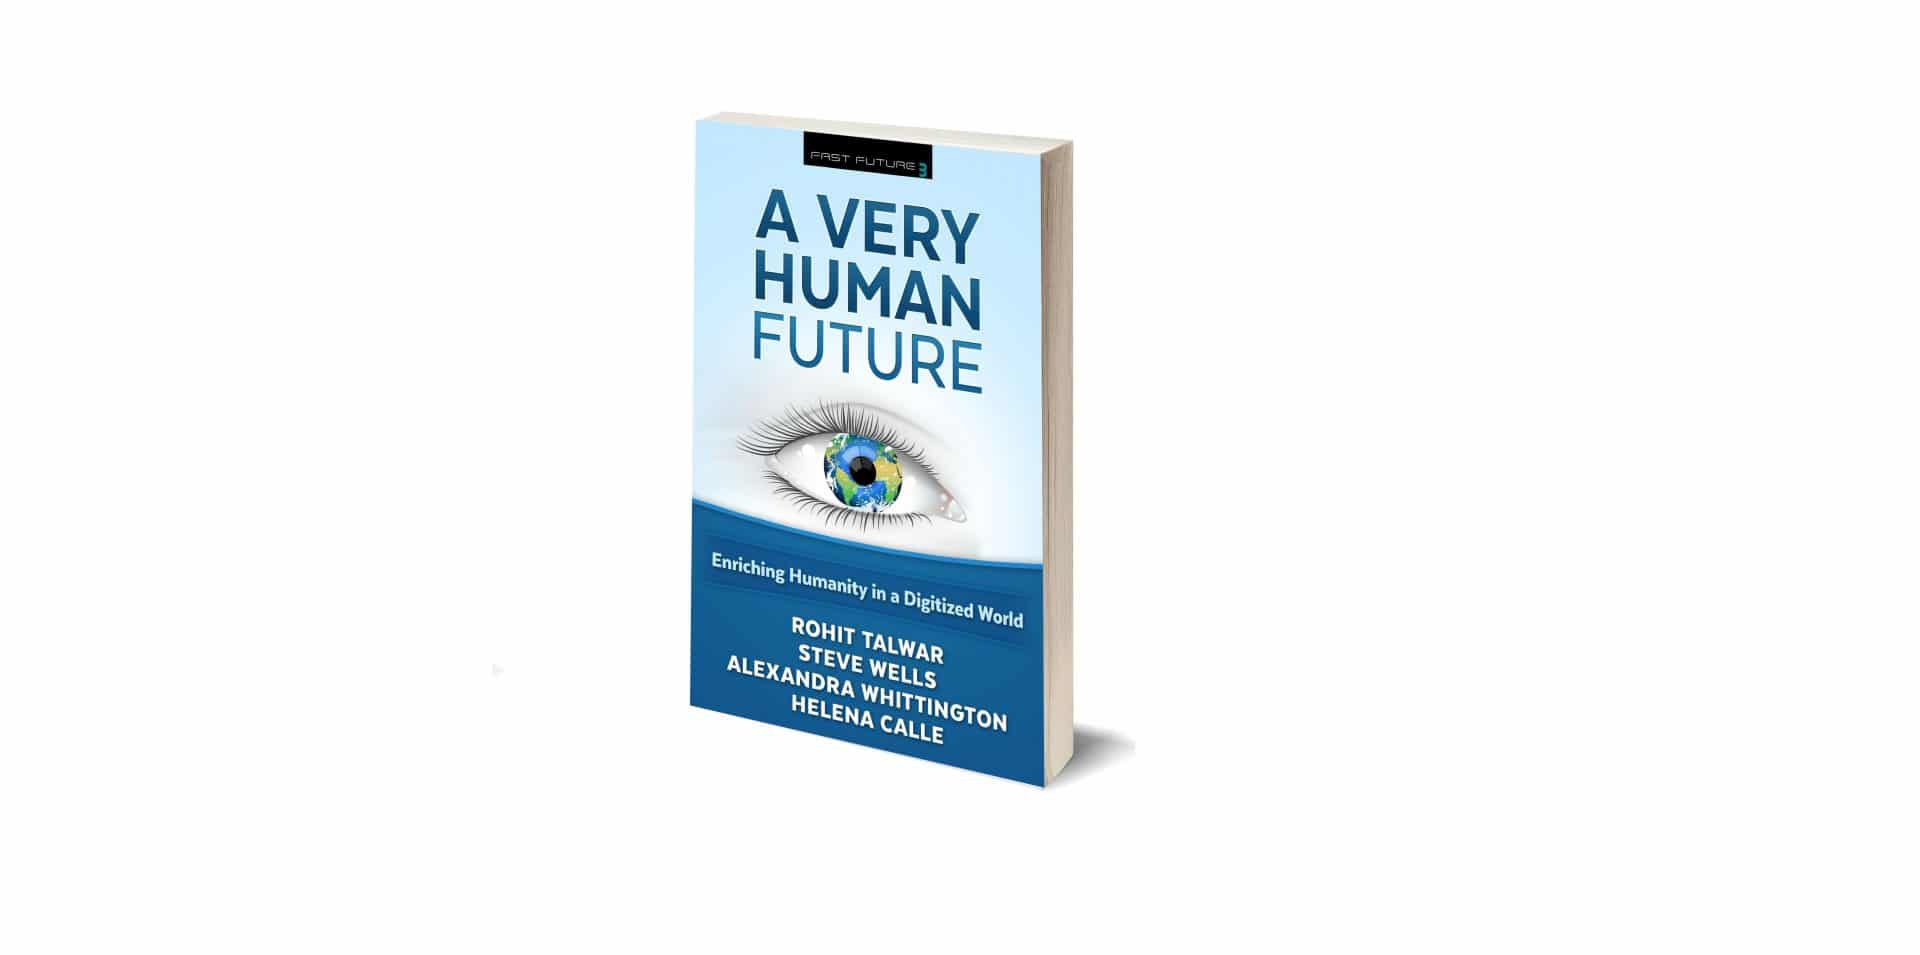 A Very Human Future – Enriching Humanity in a Digitized